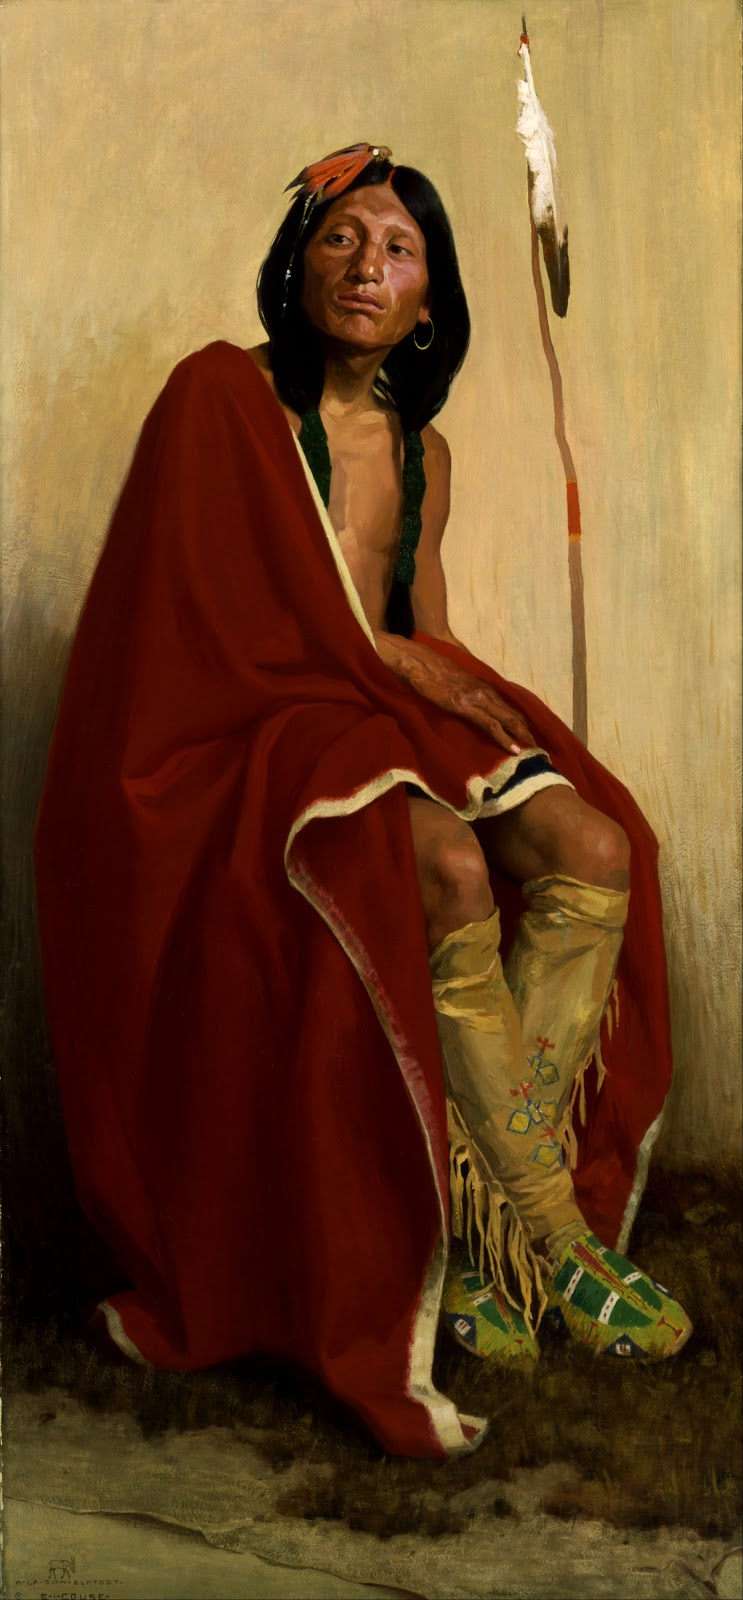 Eanger  Irving  Couse  Elk Foot  of  the  Taos  Tribe